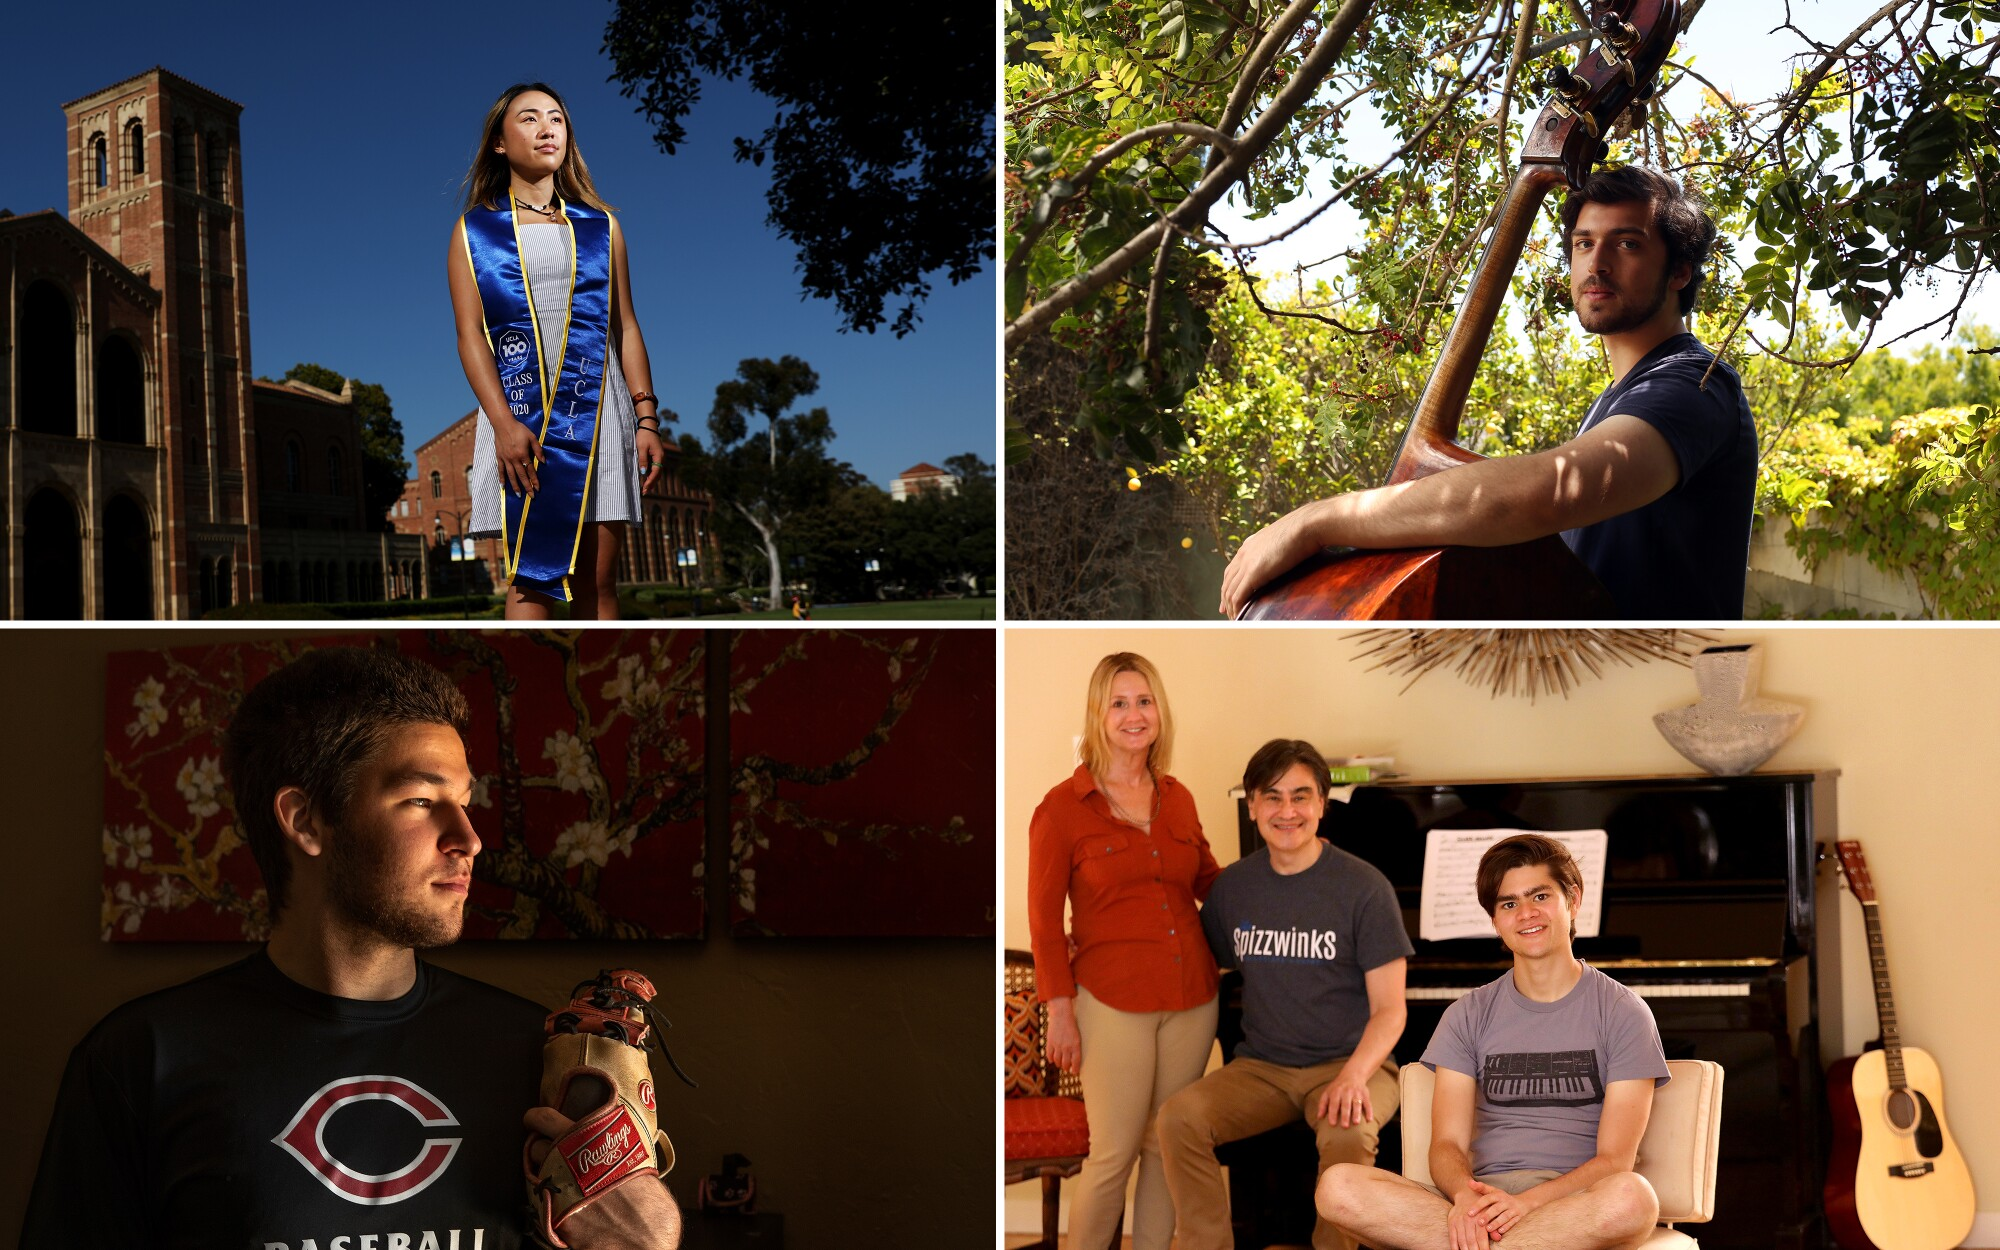 Seniors who missed out on graduating rituals